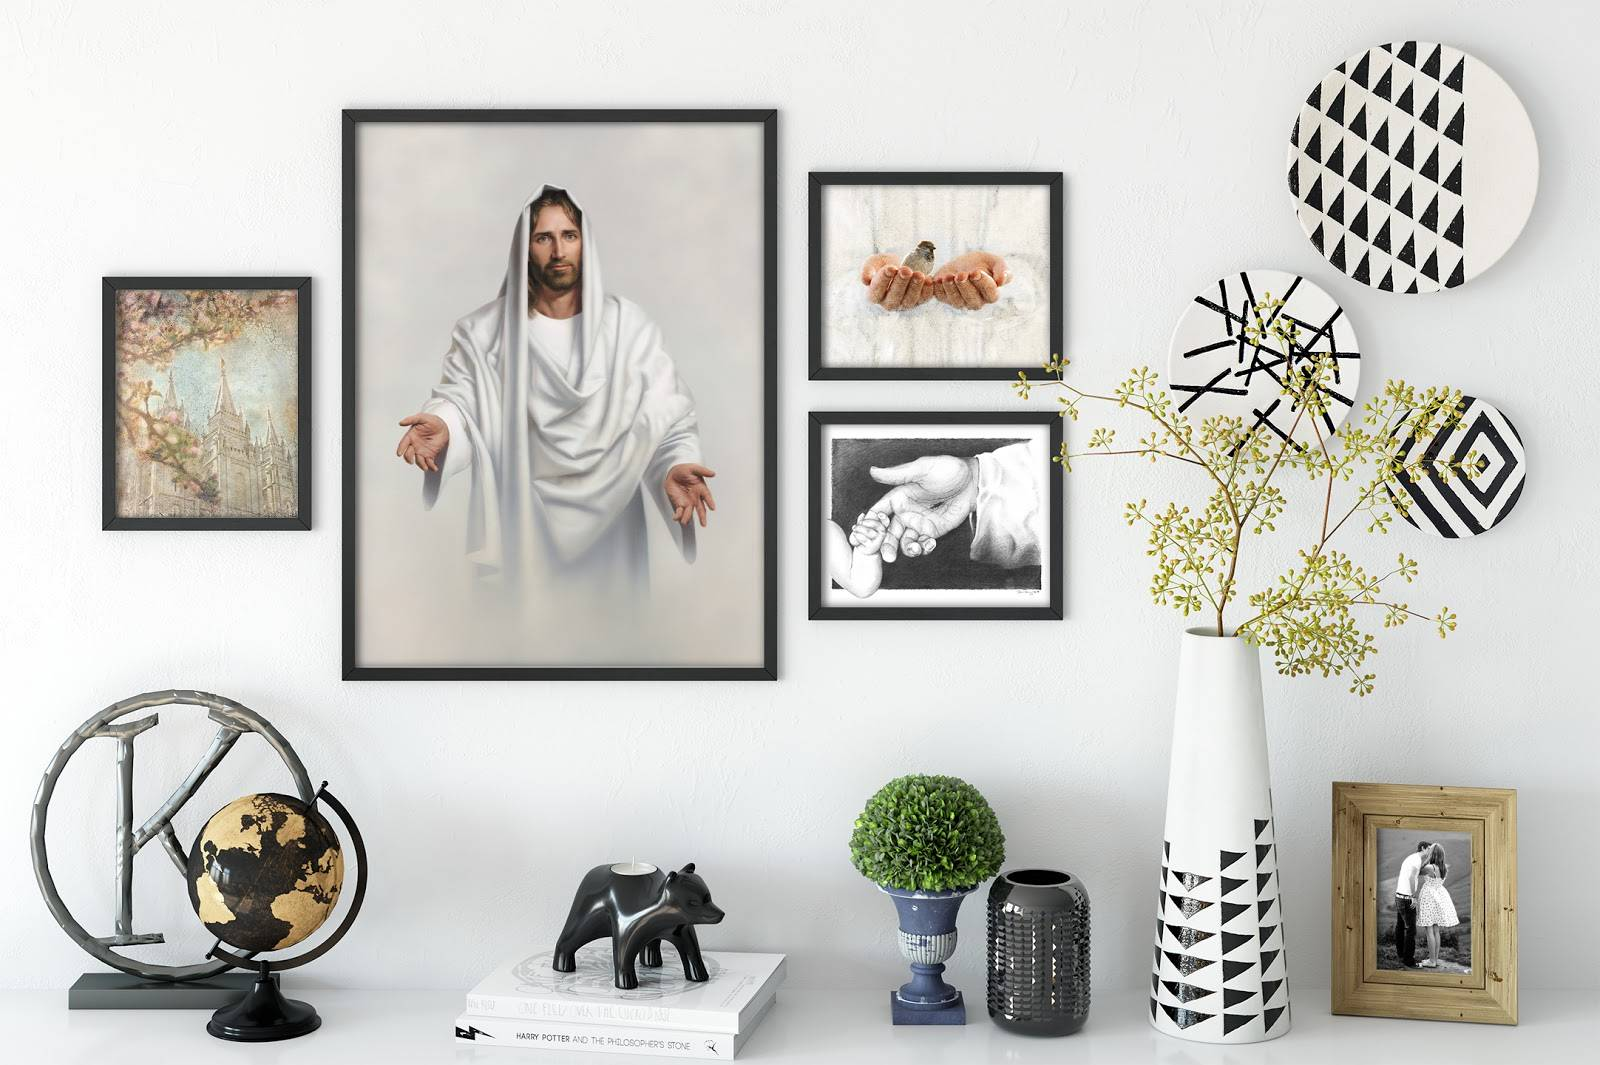 Various sizes of small wall art places together among color complimenting accent pieces.